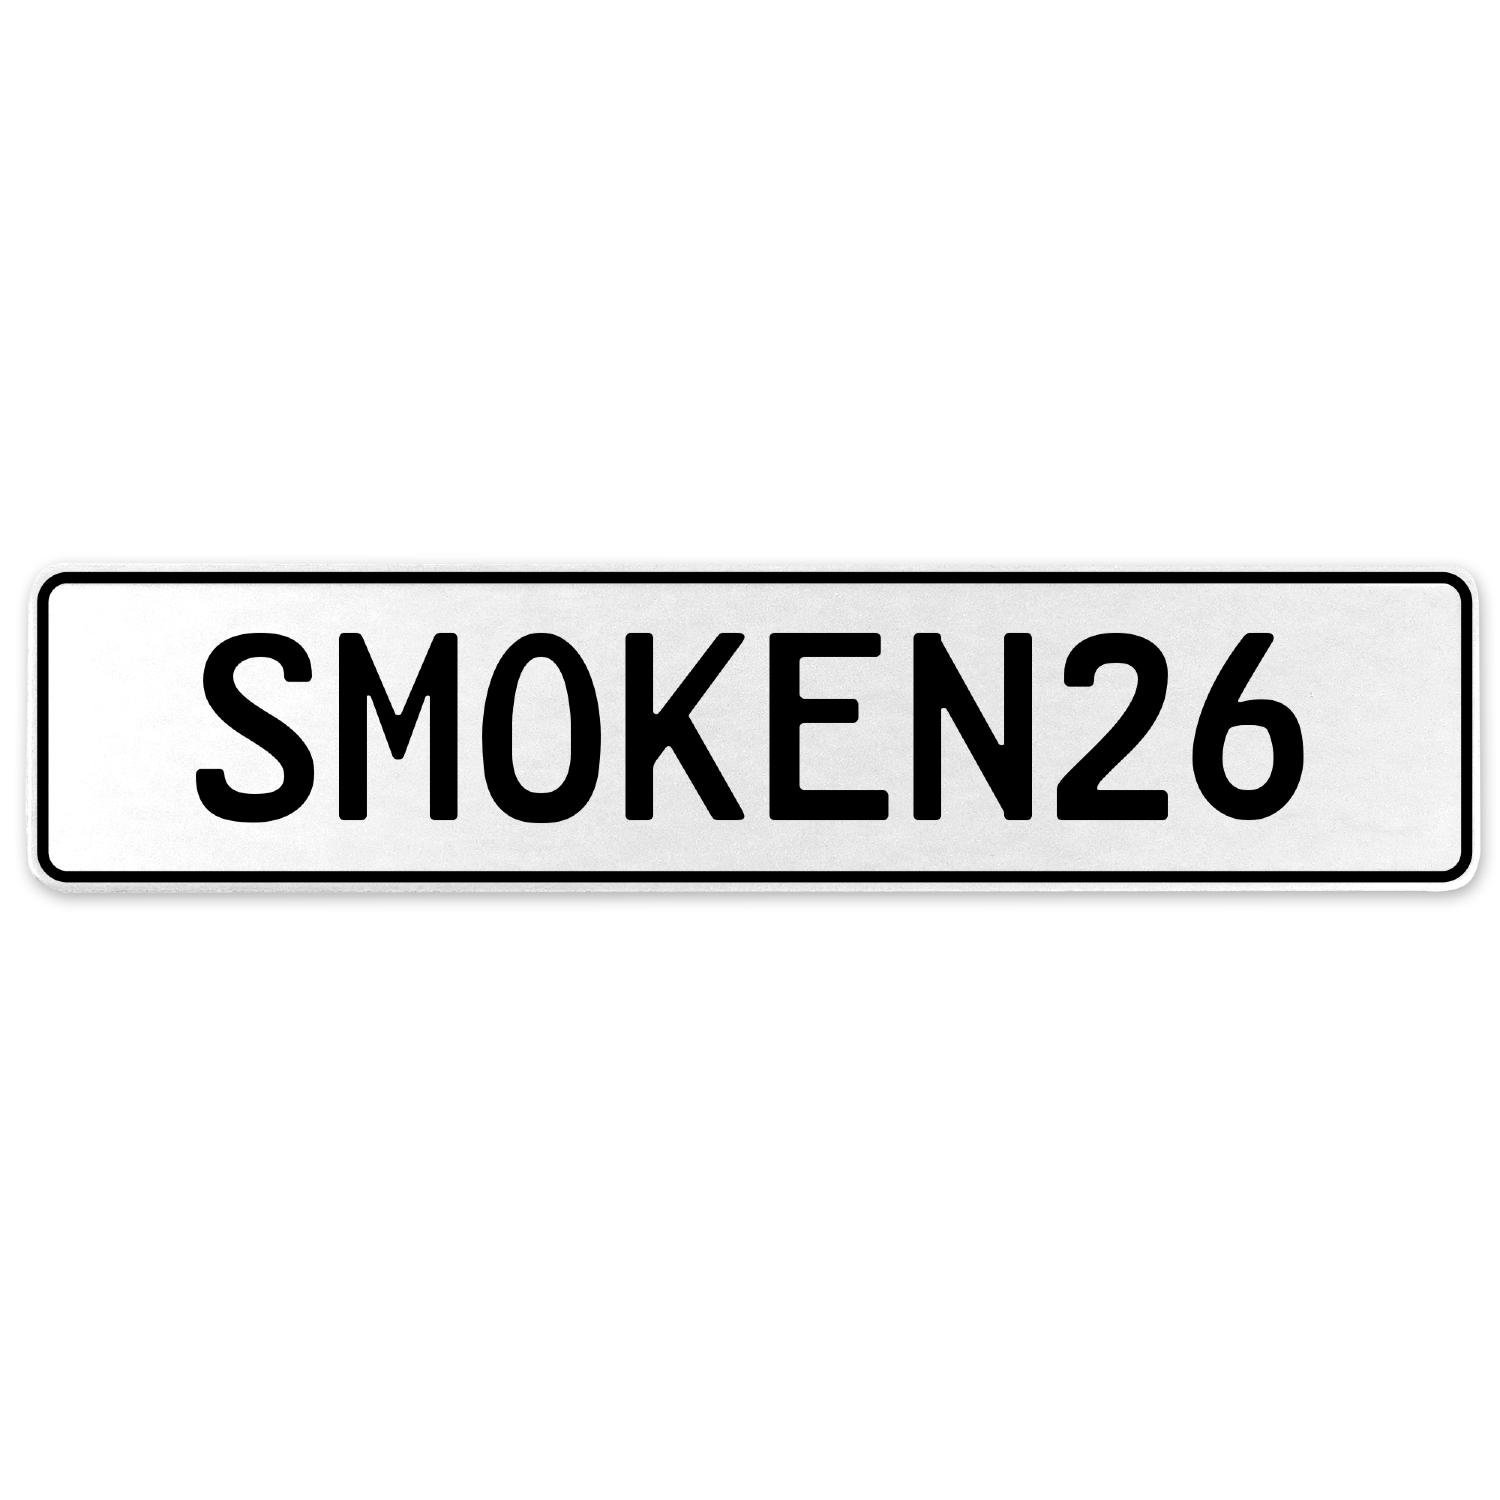 Vintage Parts 556207 SMOKEN26 White Stamped Aluminum European License Plate